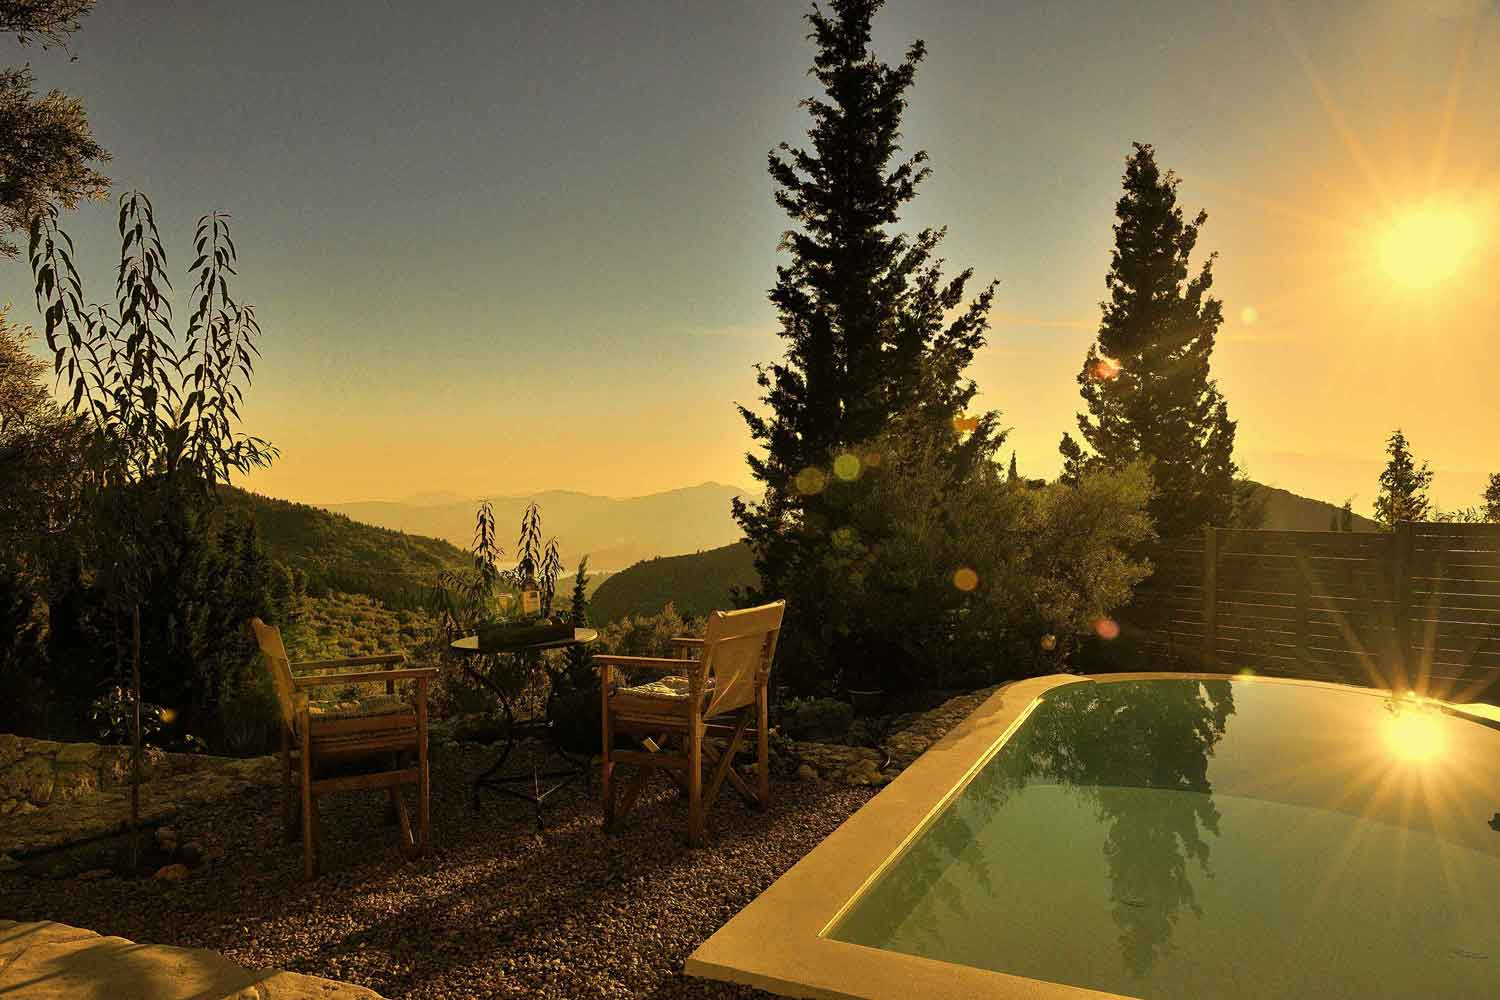 private pool villa in Greece, amazing sunrise view